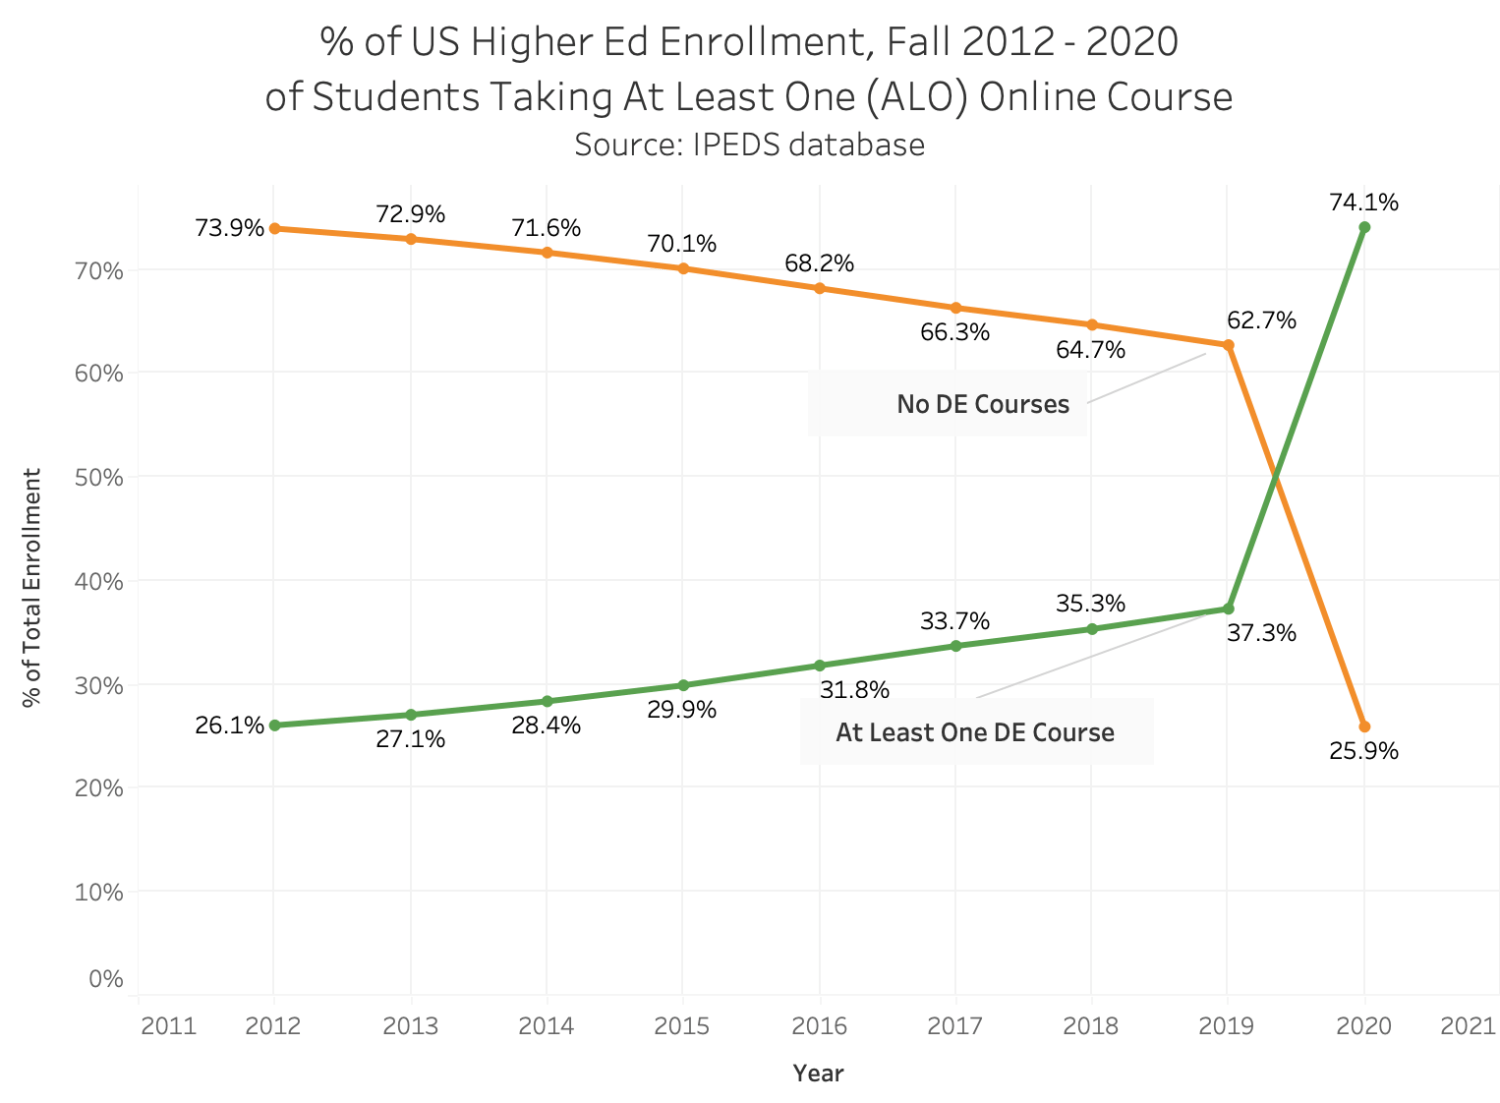 trends 2012-2020 for percentage of us college students taking at least one online course vs. no online courses